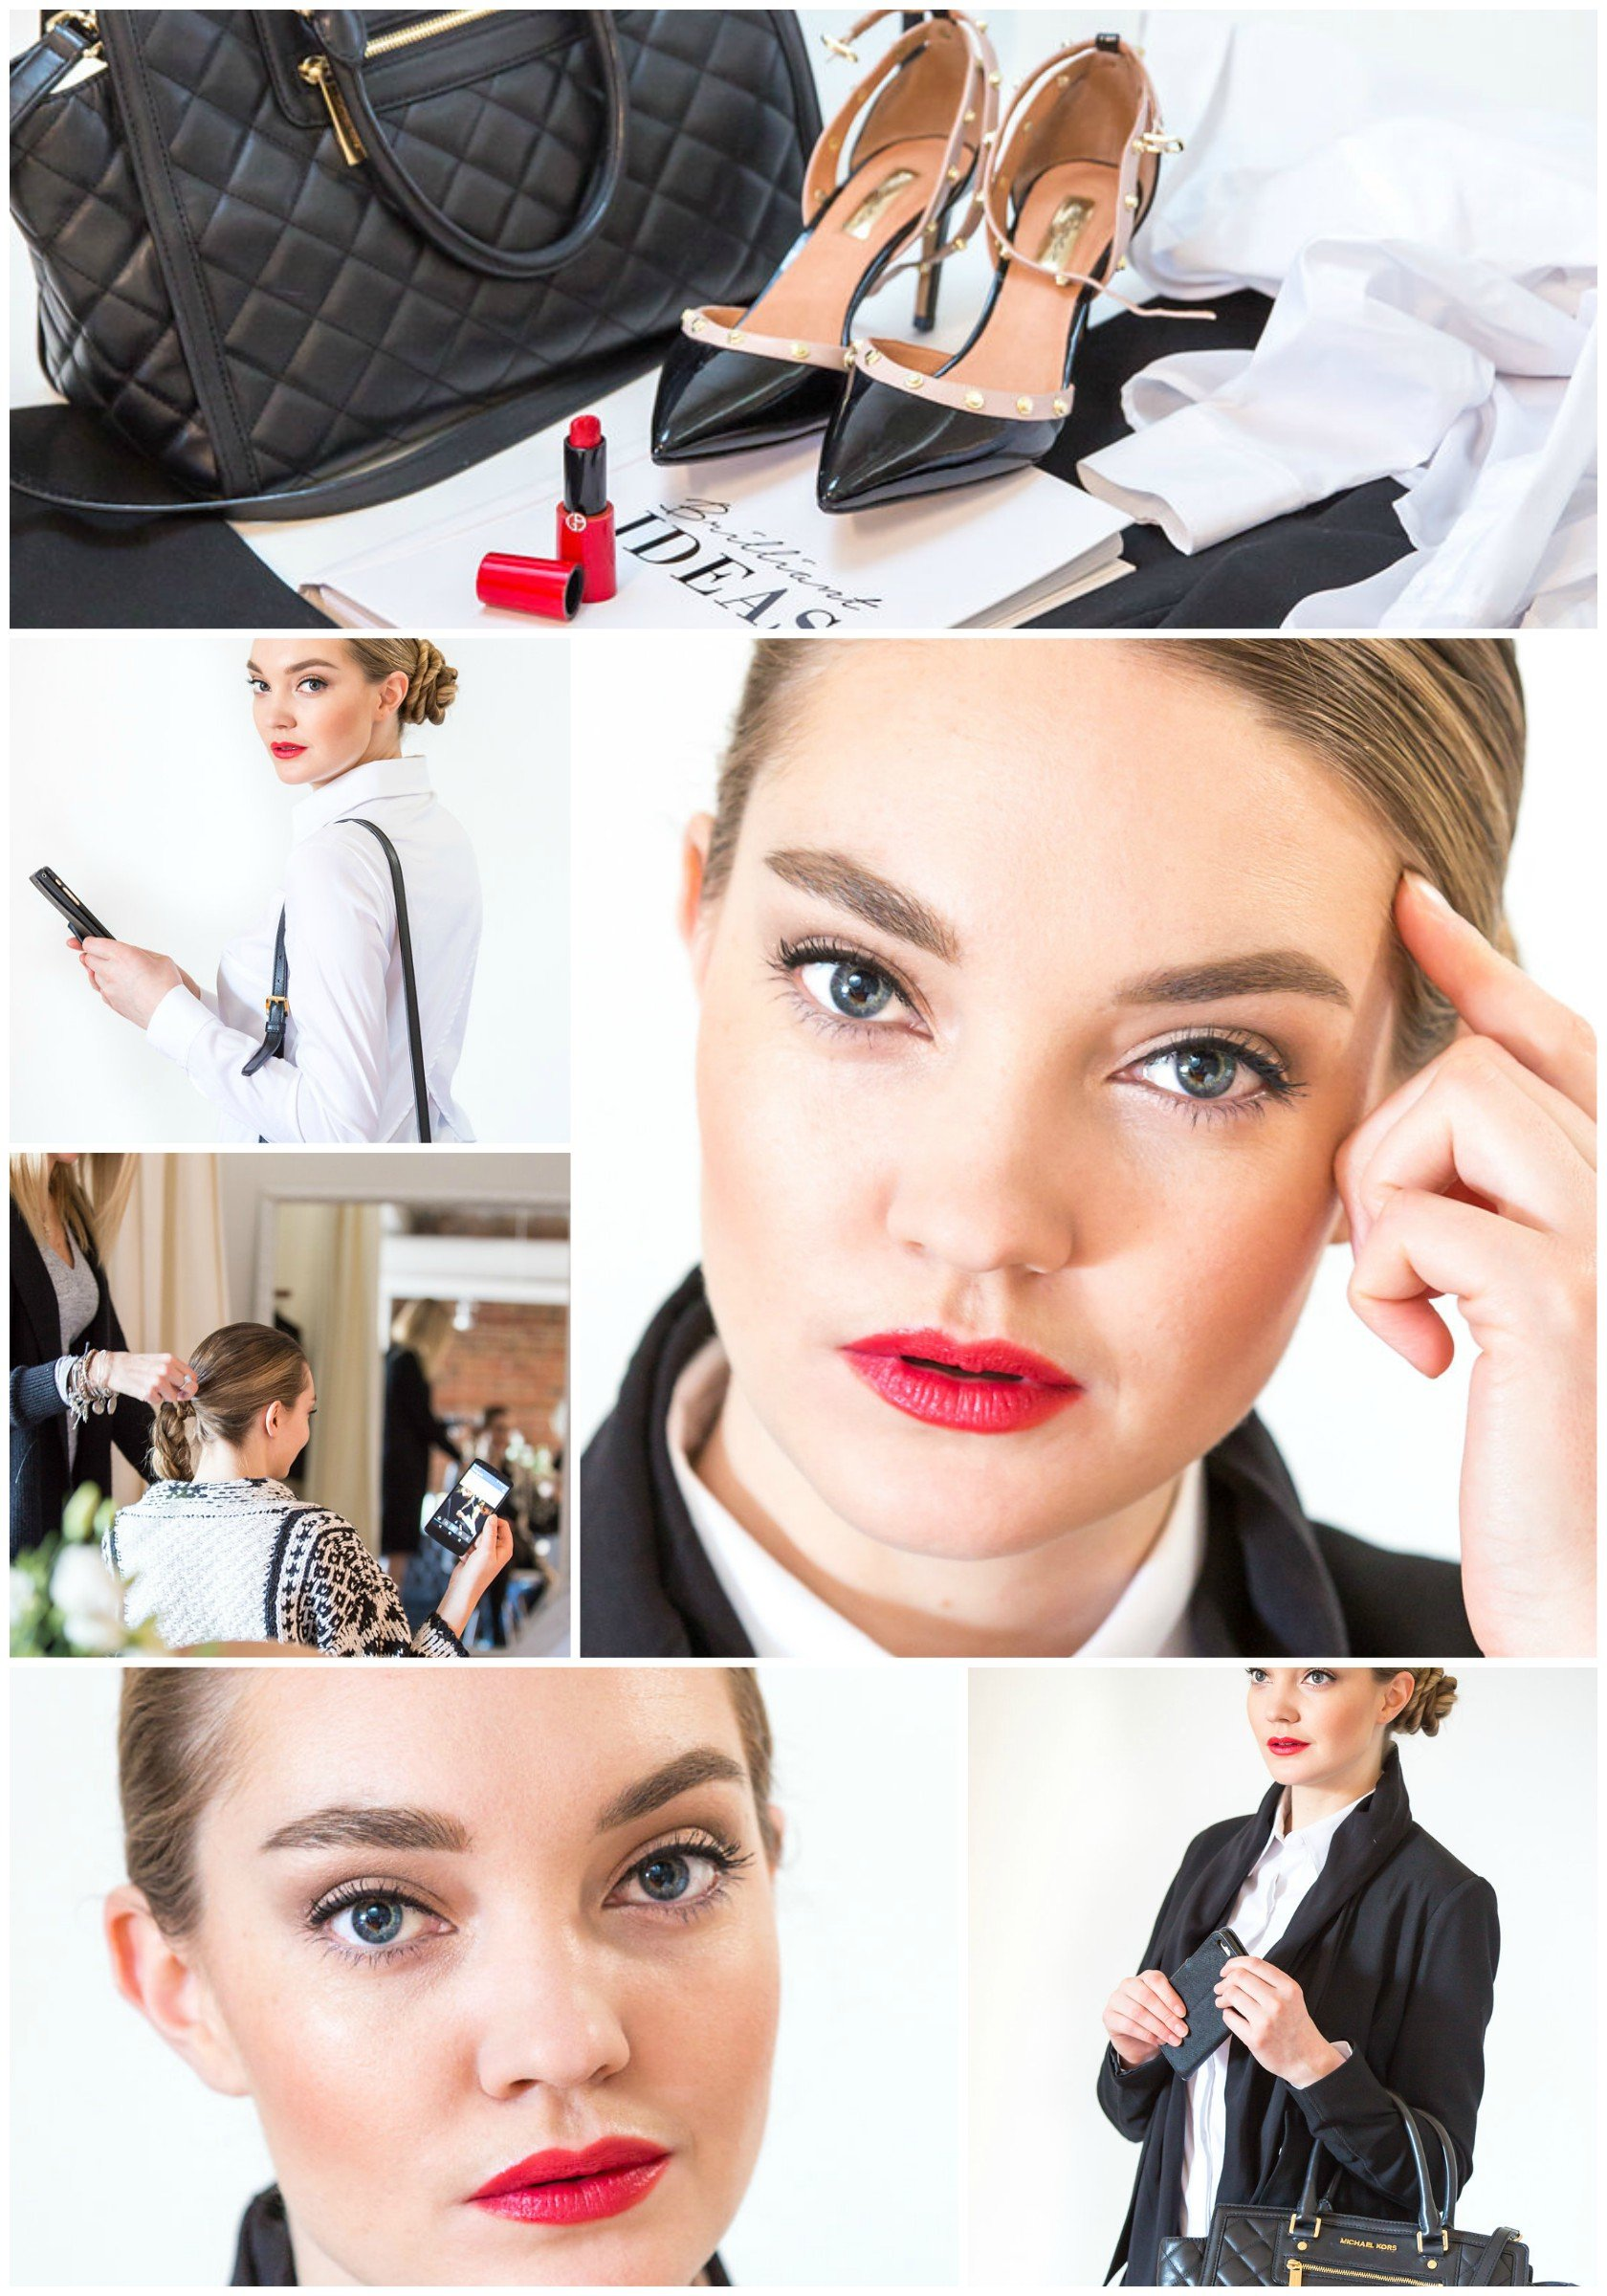 Professional makeup look for work with red lips and classic eye makeup created by Klava Z Ottawa makeup artist